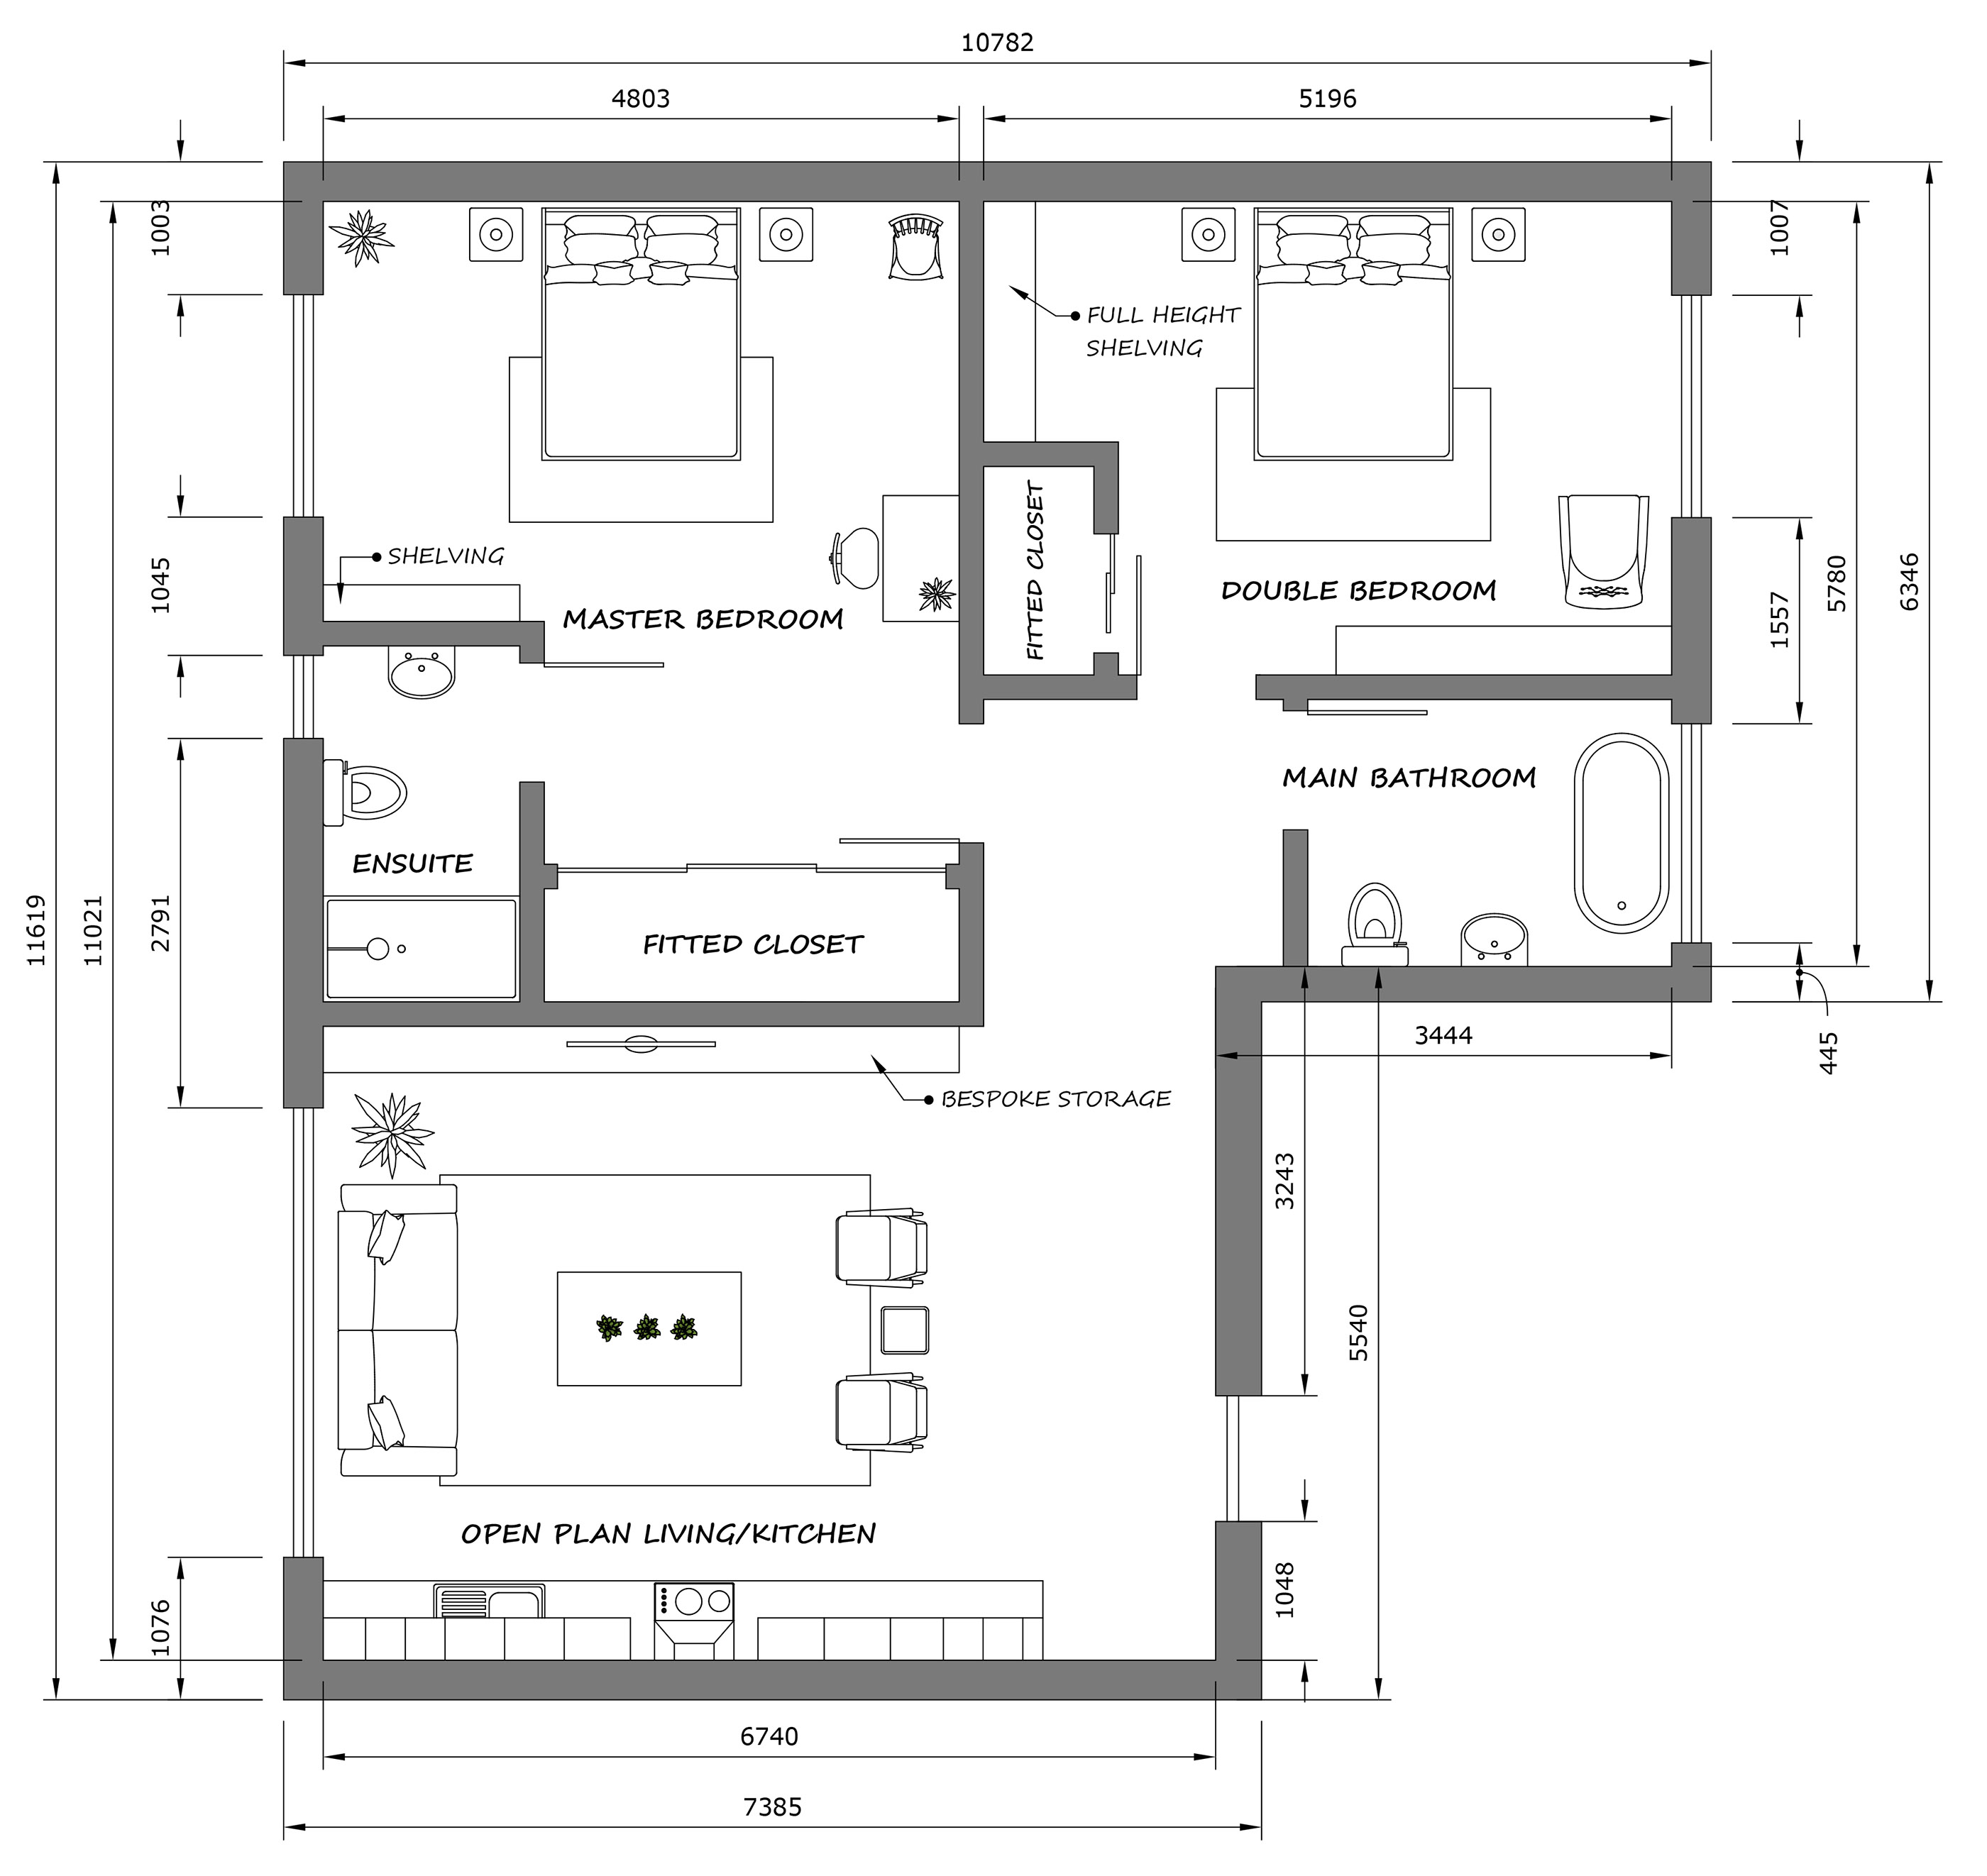 measuring out for floor plan for your new home is essential to interior design success